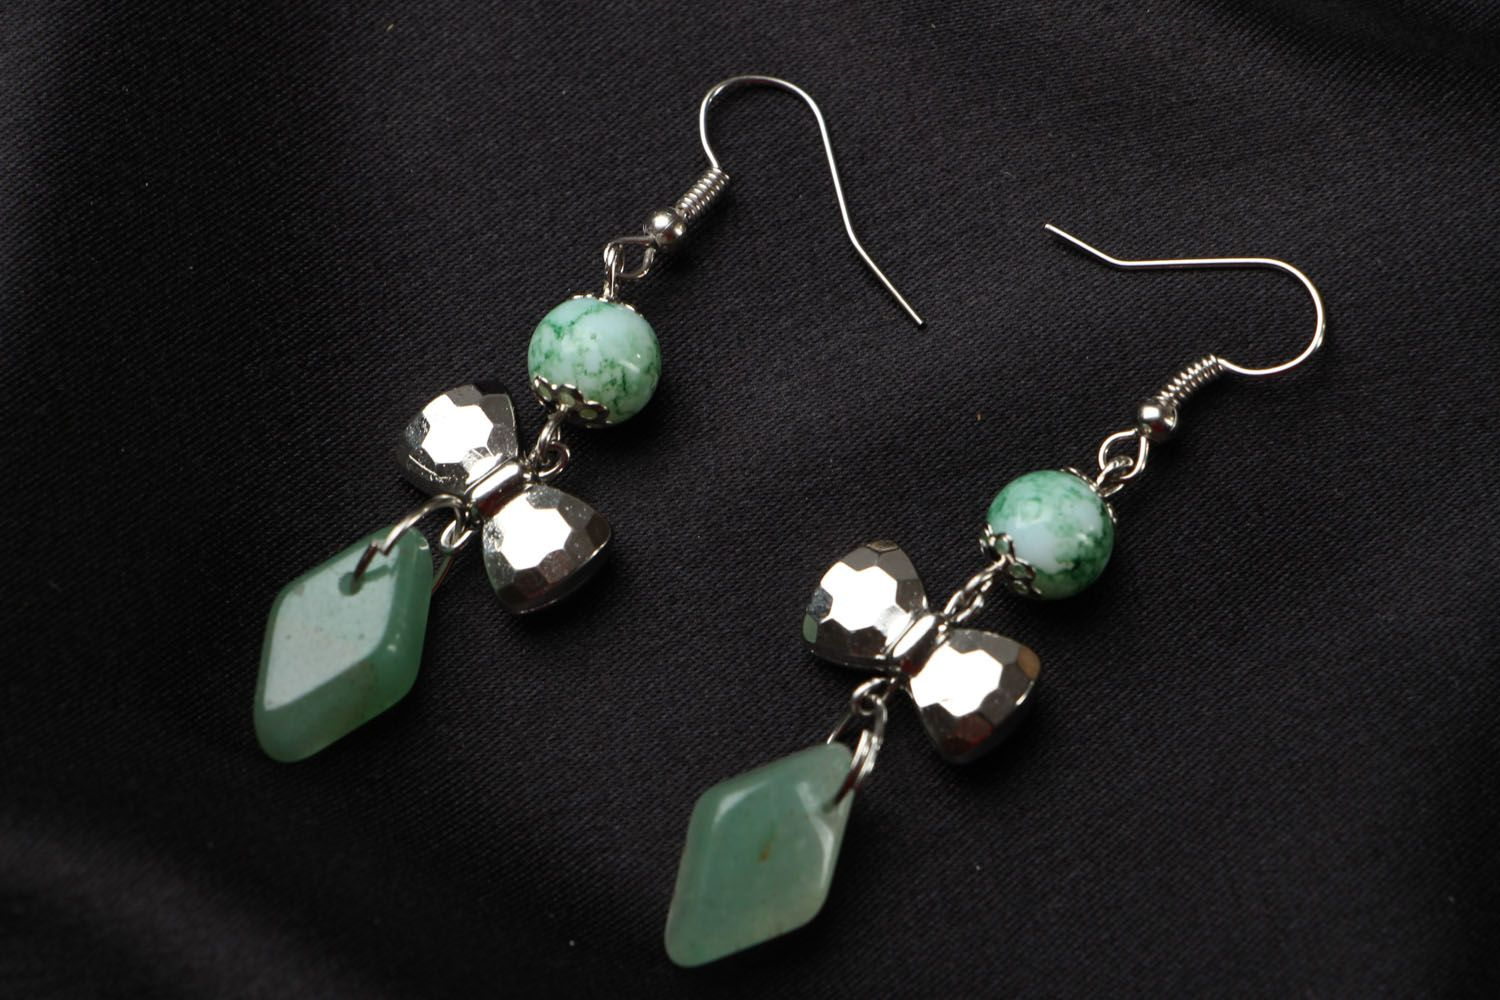 Earrings with nephrite charms photo 1